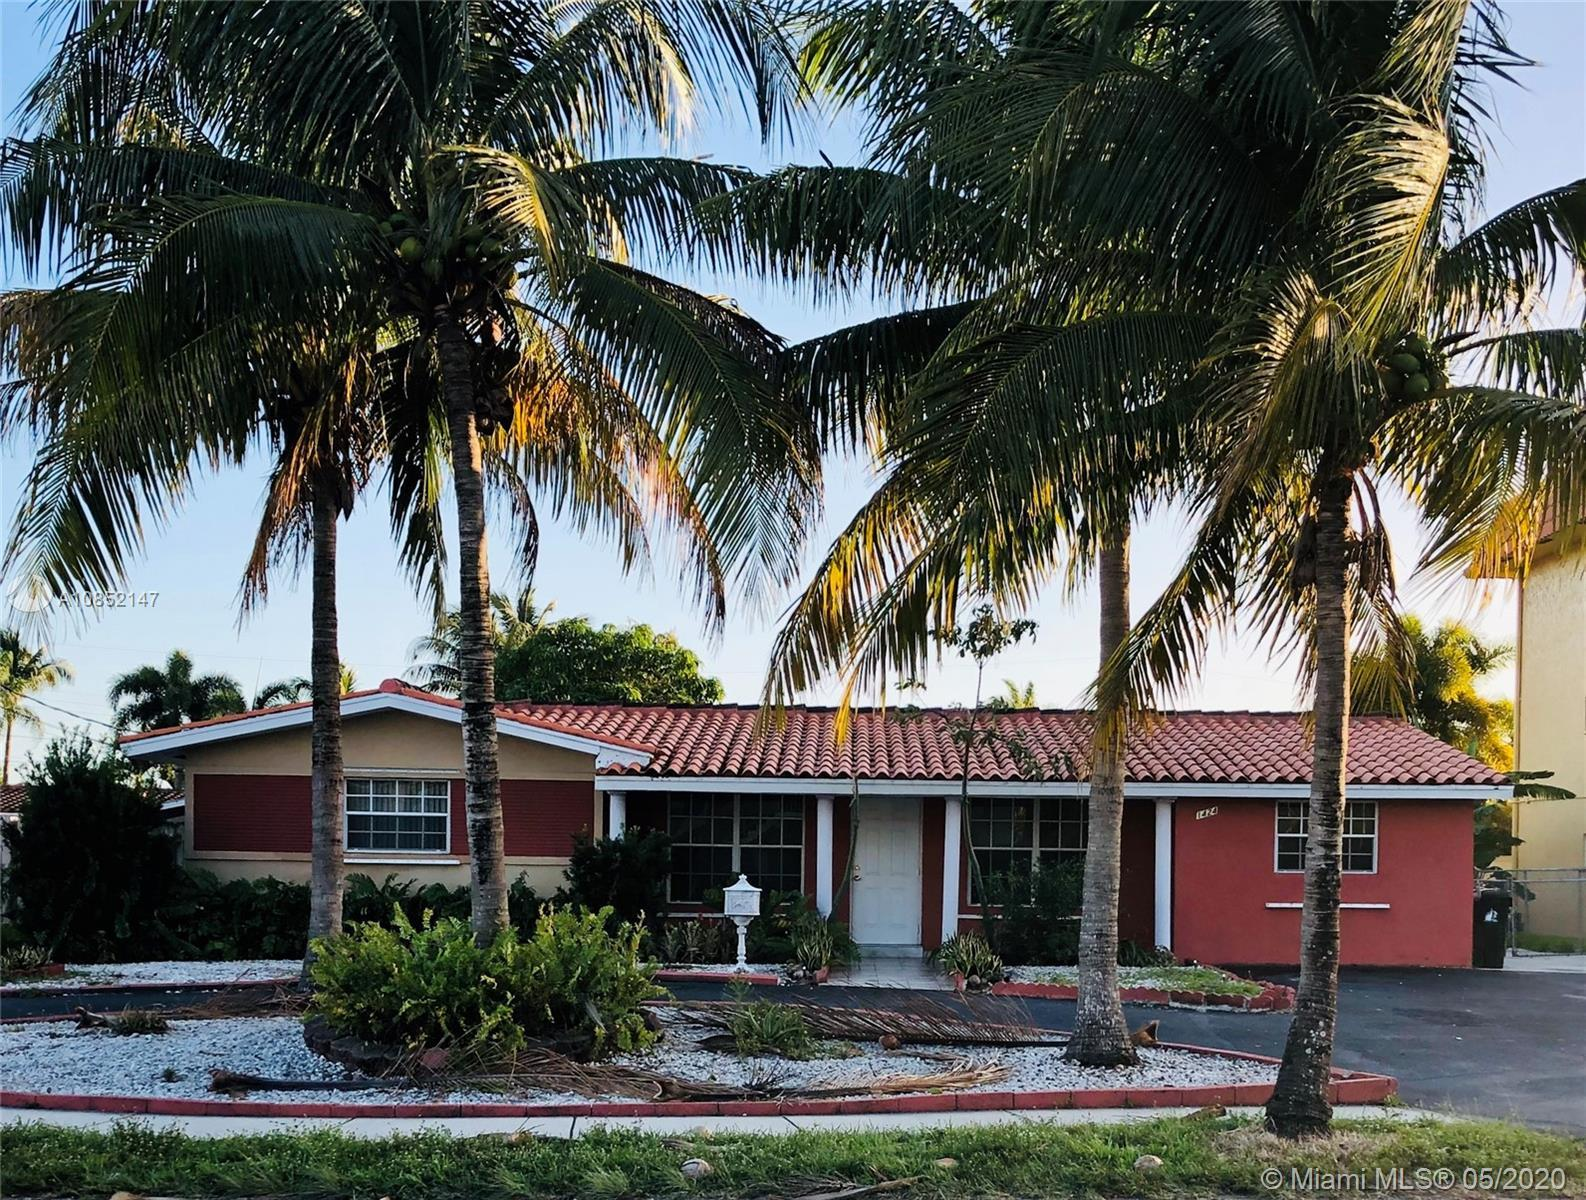 Spacious family home in the heart of Coral Ridge Isles. Features include large open living space wit